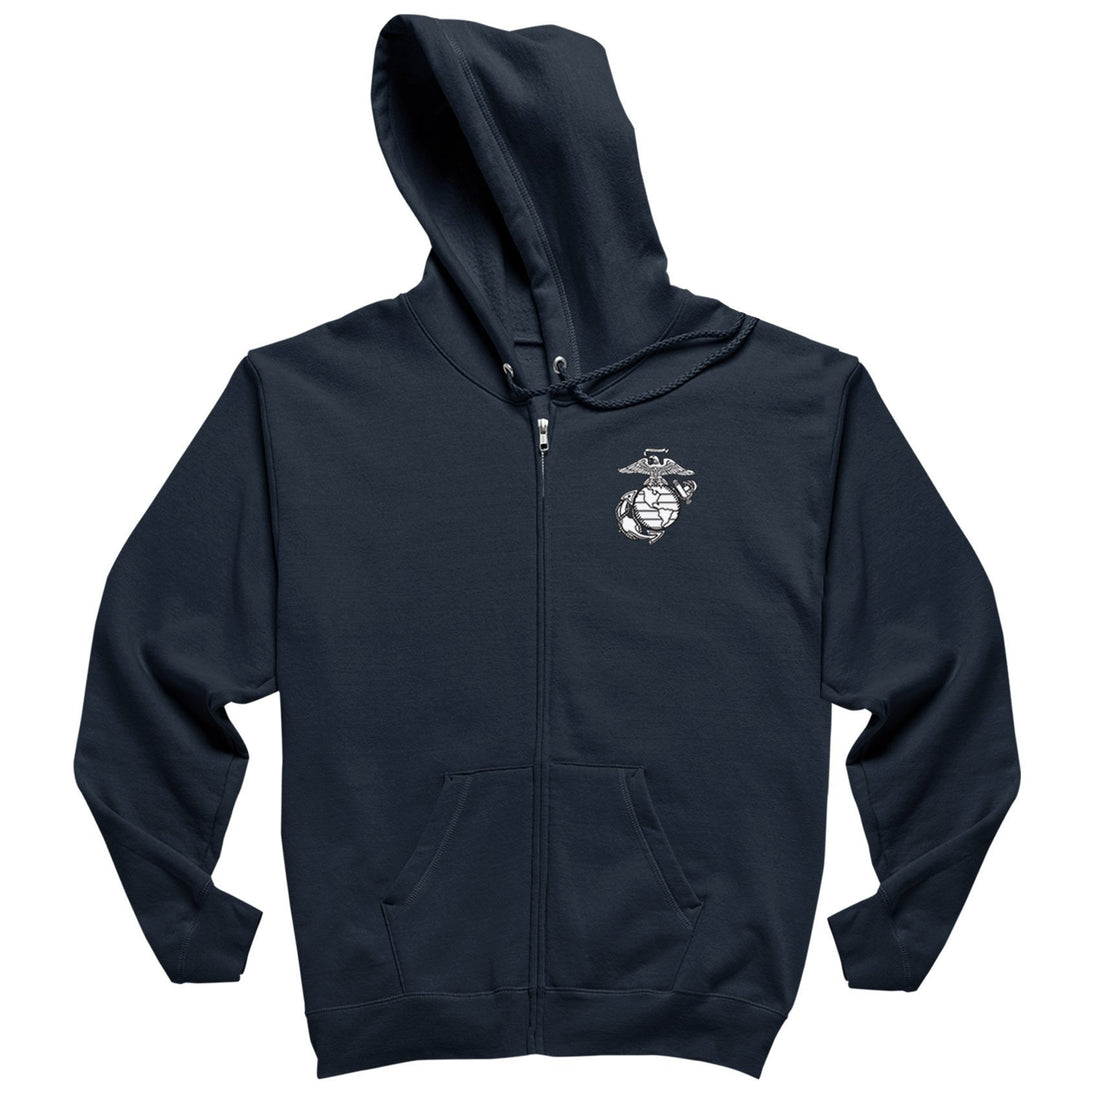 White EGA Screen Printed Chest Seal Heavy Blend™ Full-Zip Hoodie - Marine Corps Direct